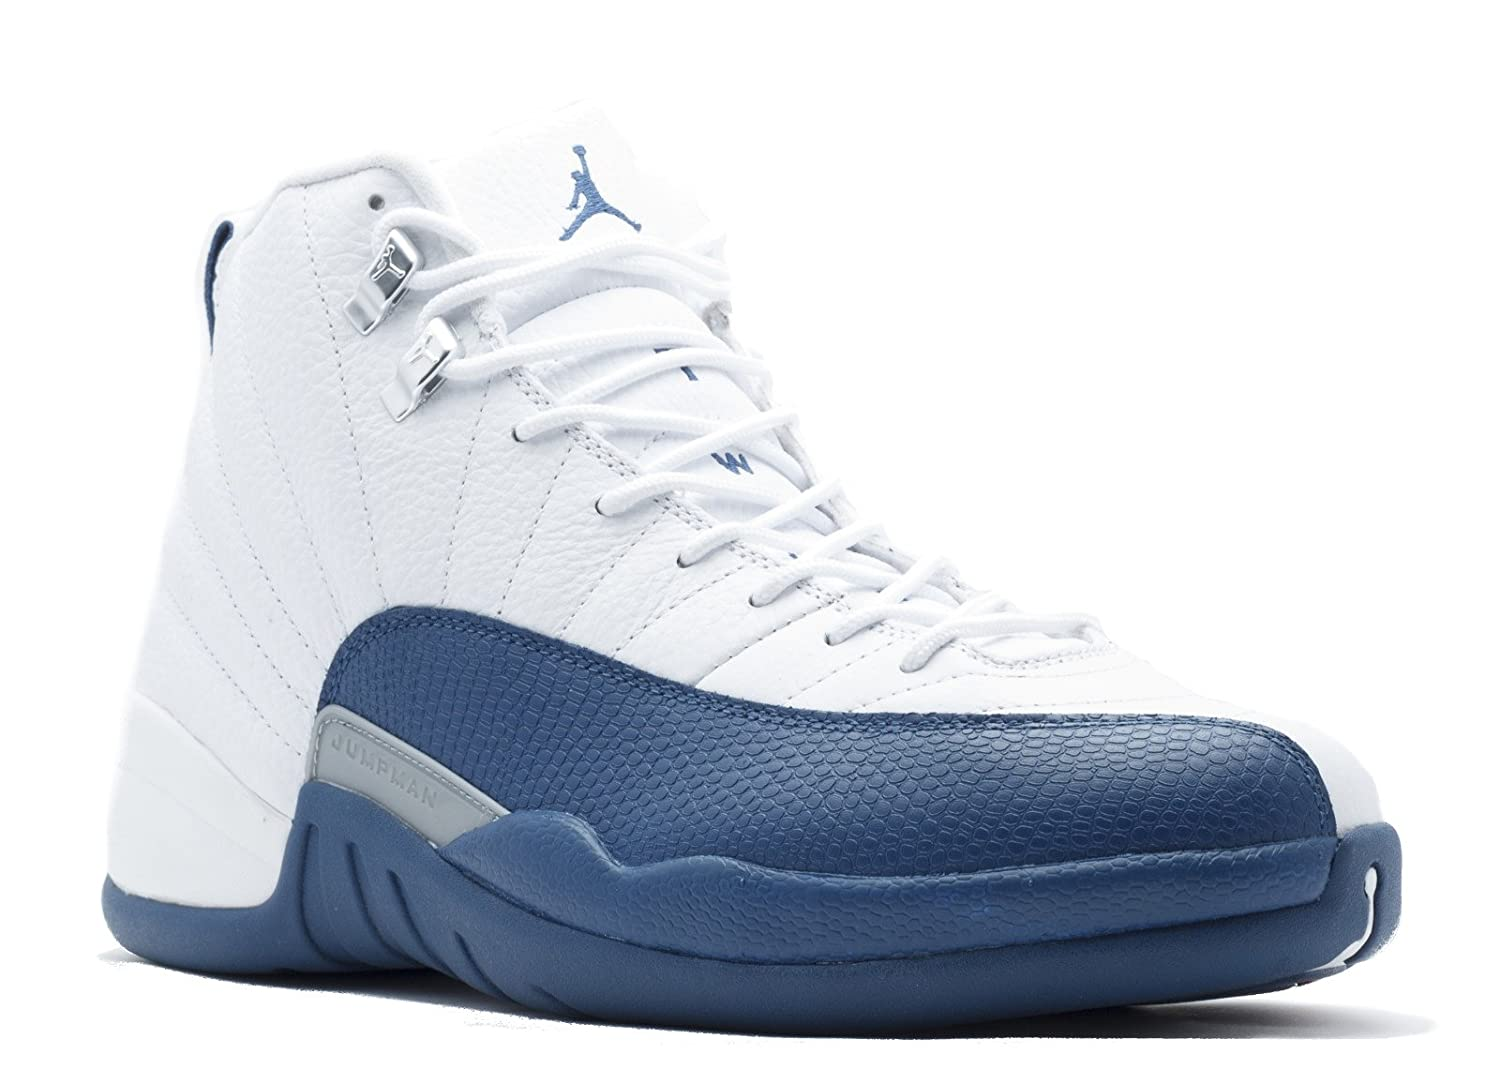 newest 2a1fa 4f56c Amazon.com   Air Jordan 12 Retro